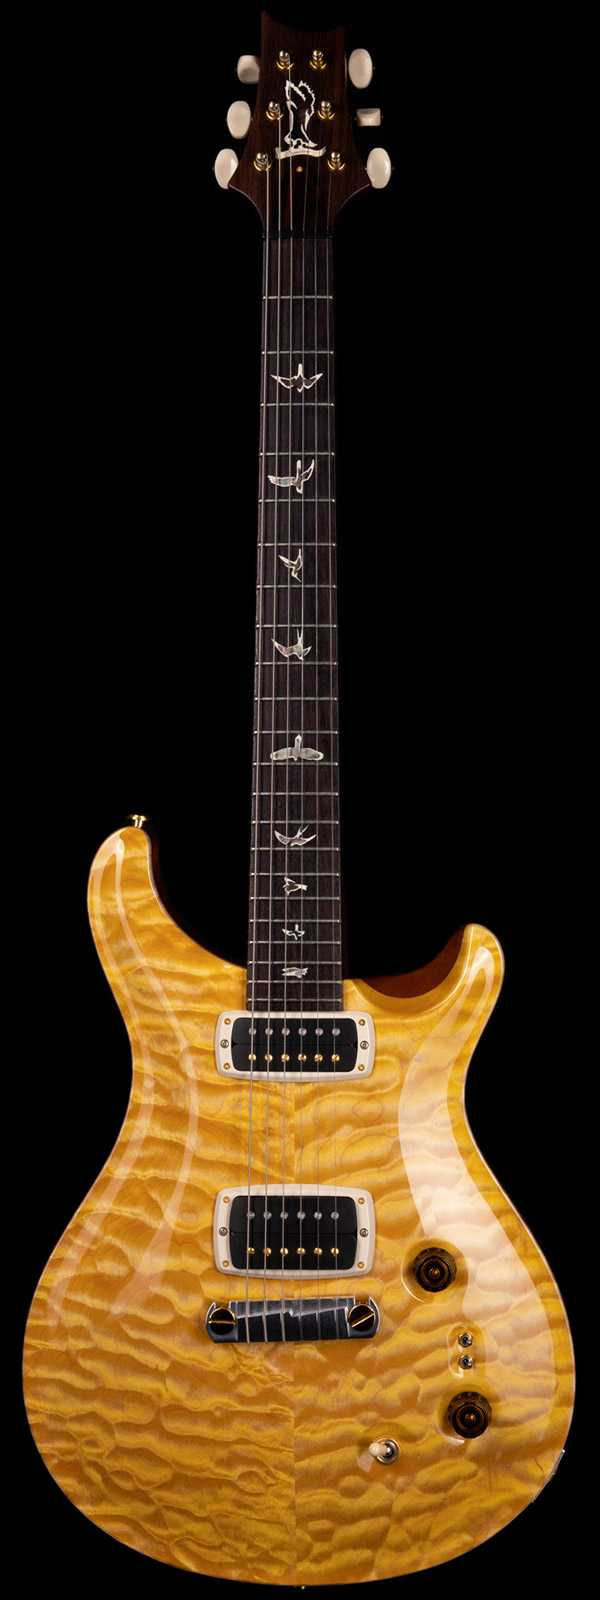 PRS Private Stock 2011 Signature Limited Run 64 of 100 Faded Vintage Yellow